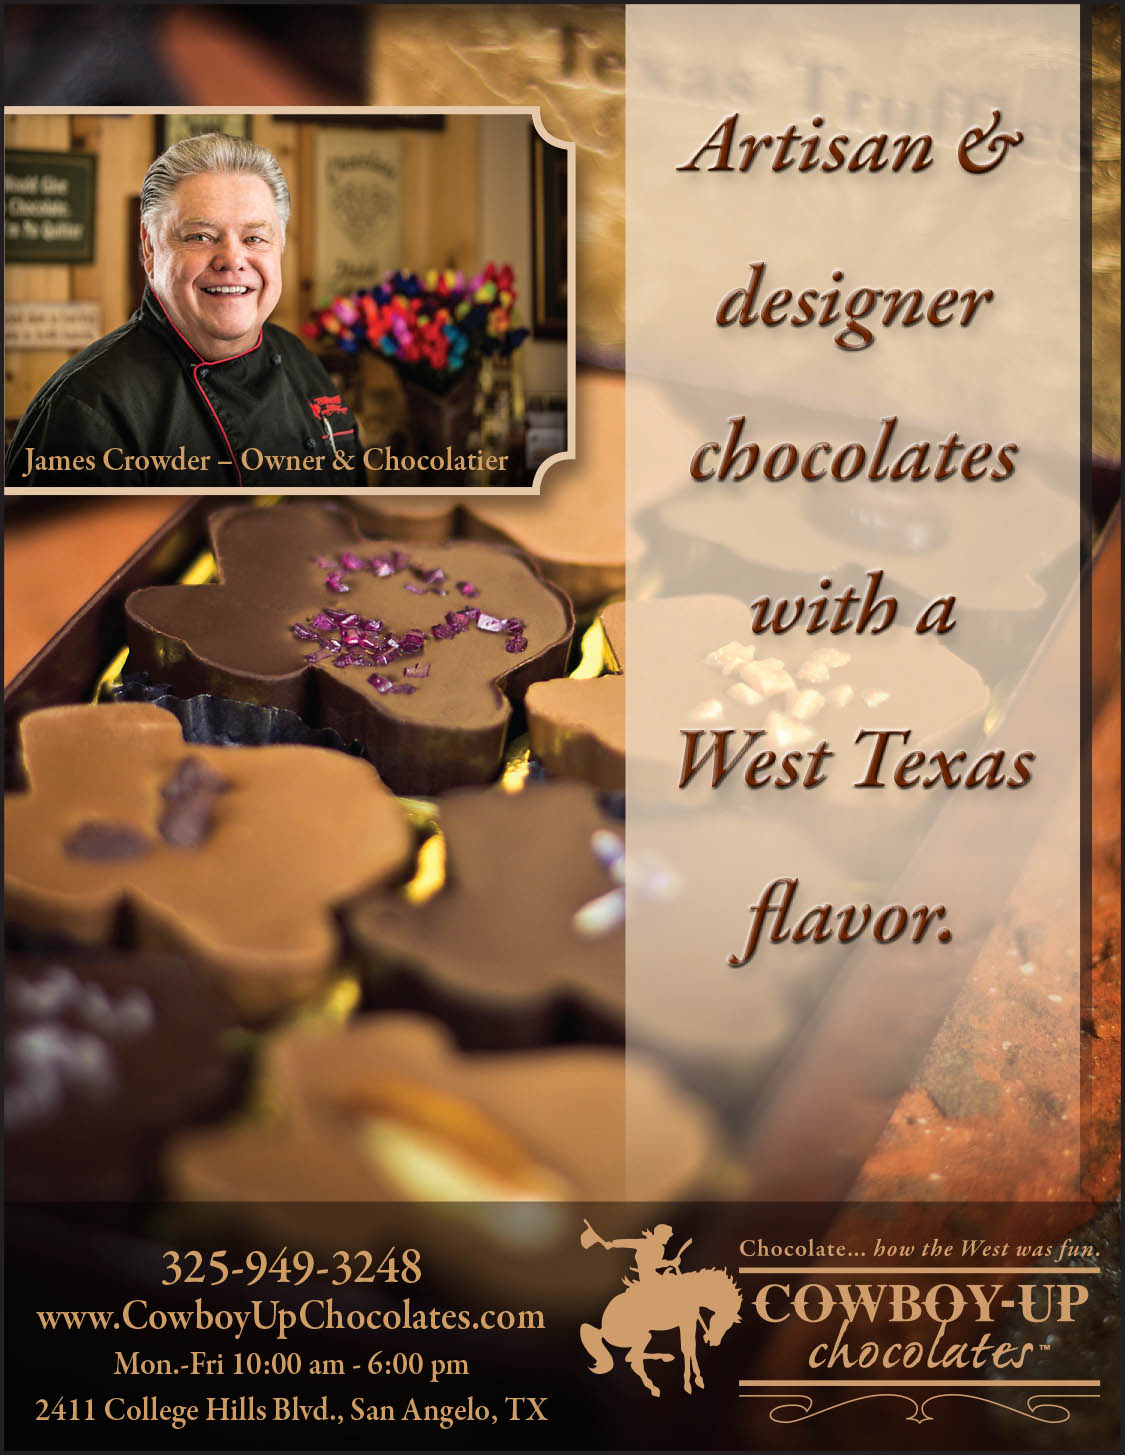 Cowboy-Up Chocolates Ad 2